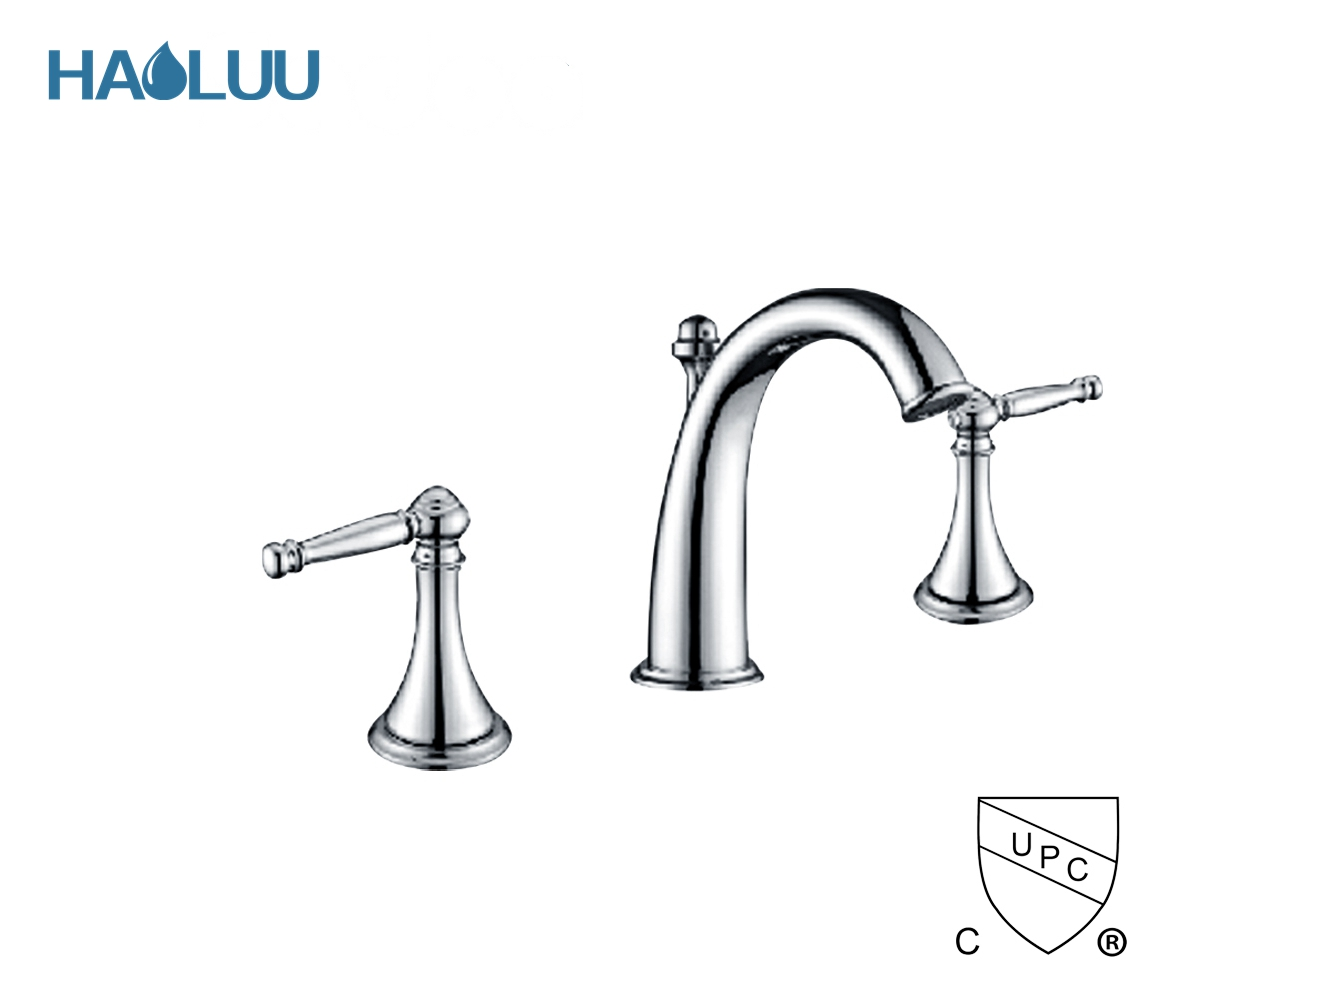 UPC Three Way Faucet With Pop-up HL91912